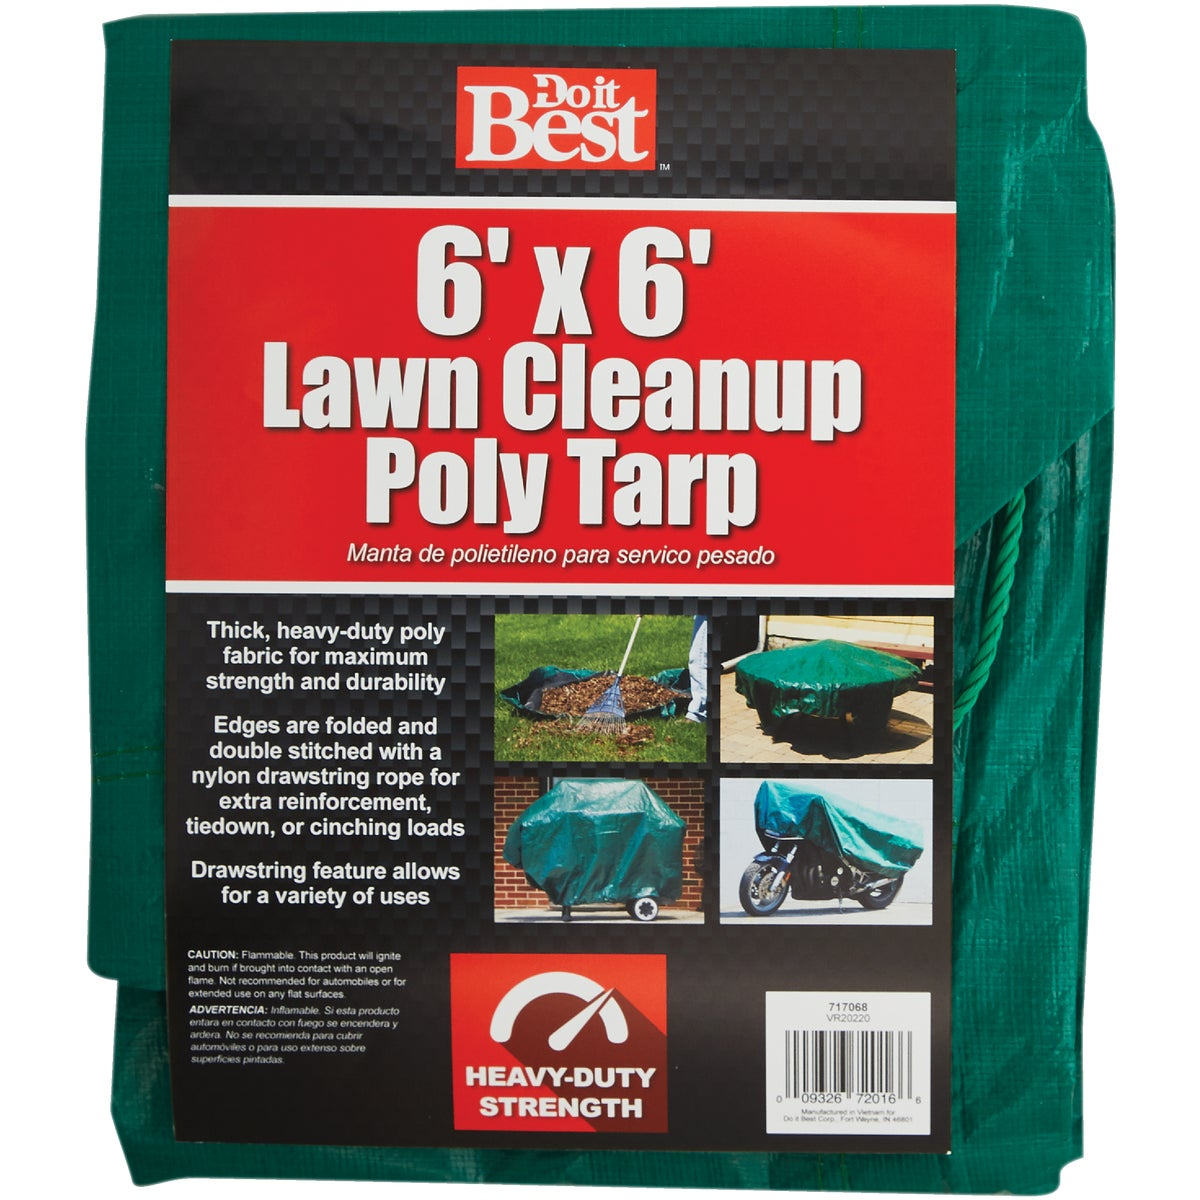 6X6 GREEN YARD TARP - 717068 by Do it Best